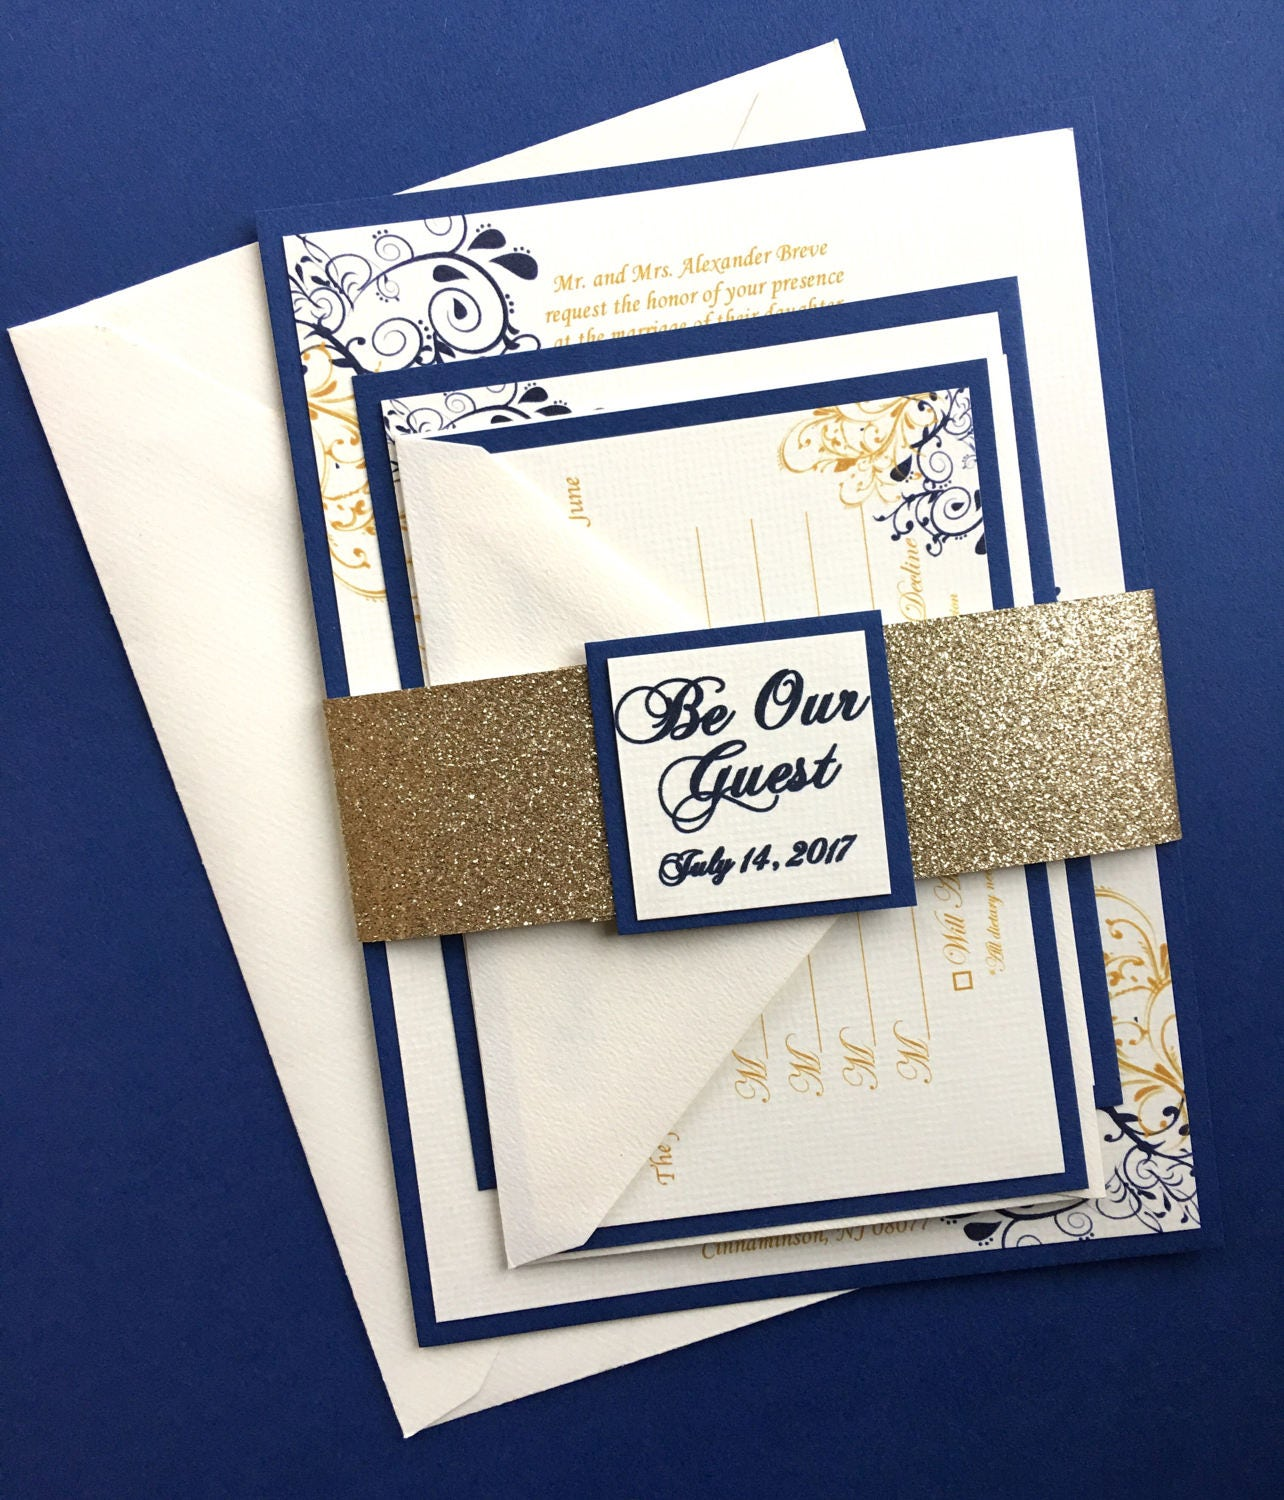 Beauty and The Beast Themed Wedding Invitations Sapphire Blue and Gold